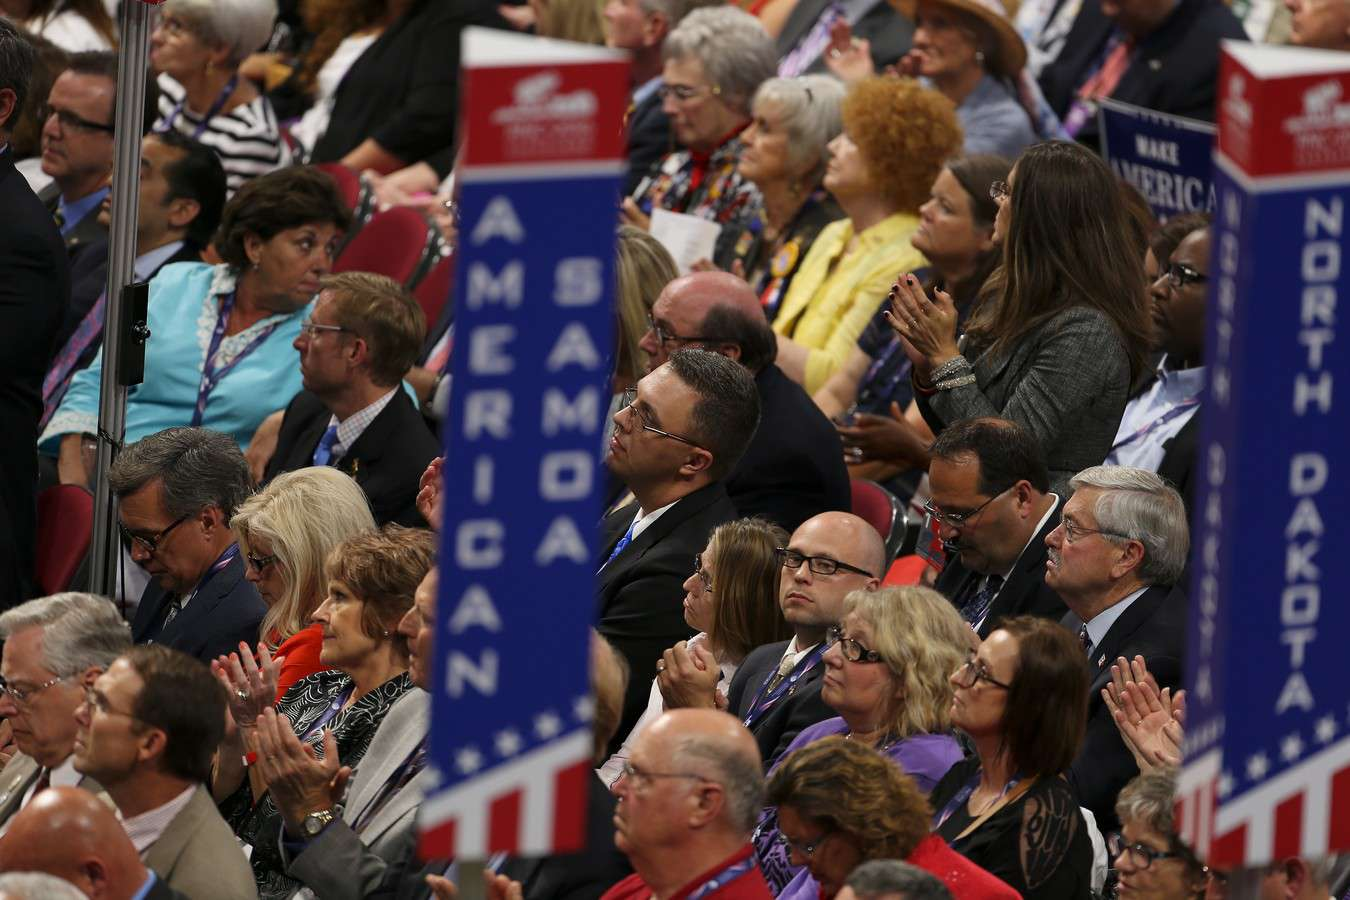 Delegates cheer speakers at the Republican Convention